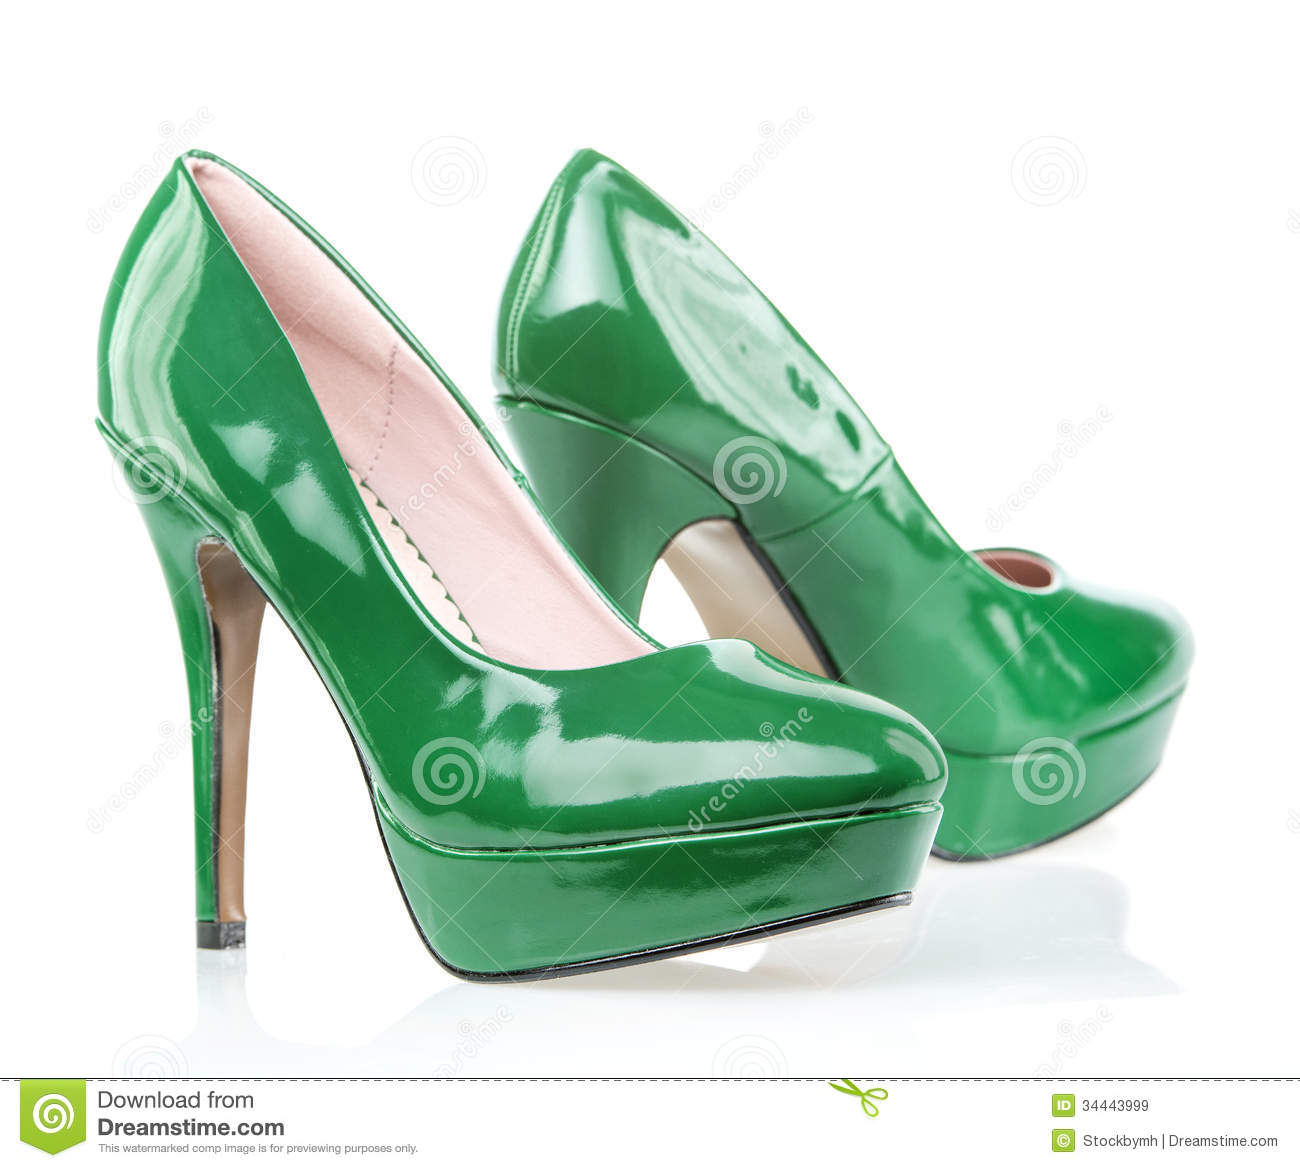 Green High Heel Shoes Images